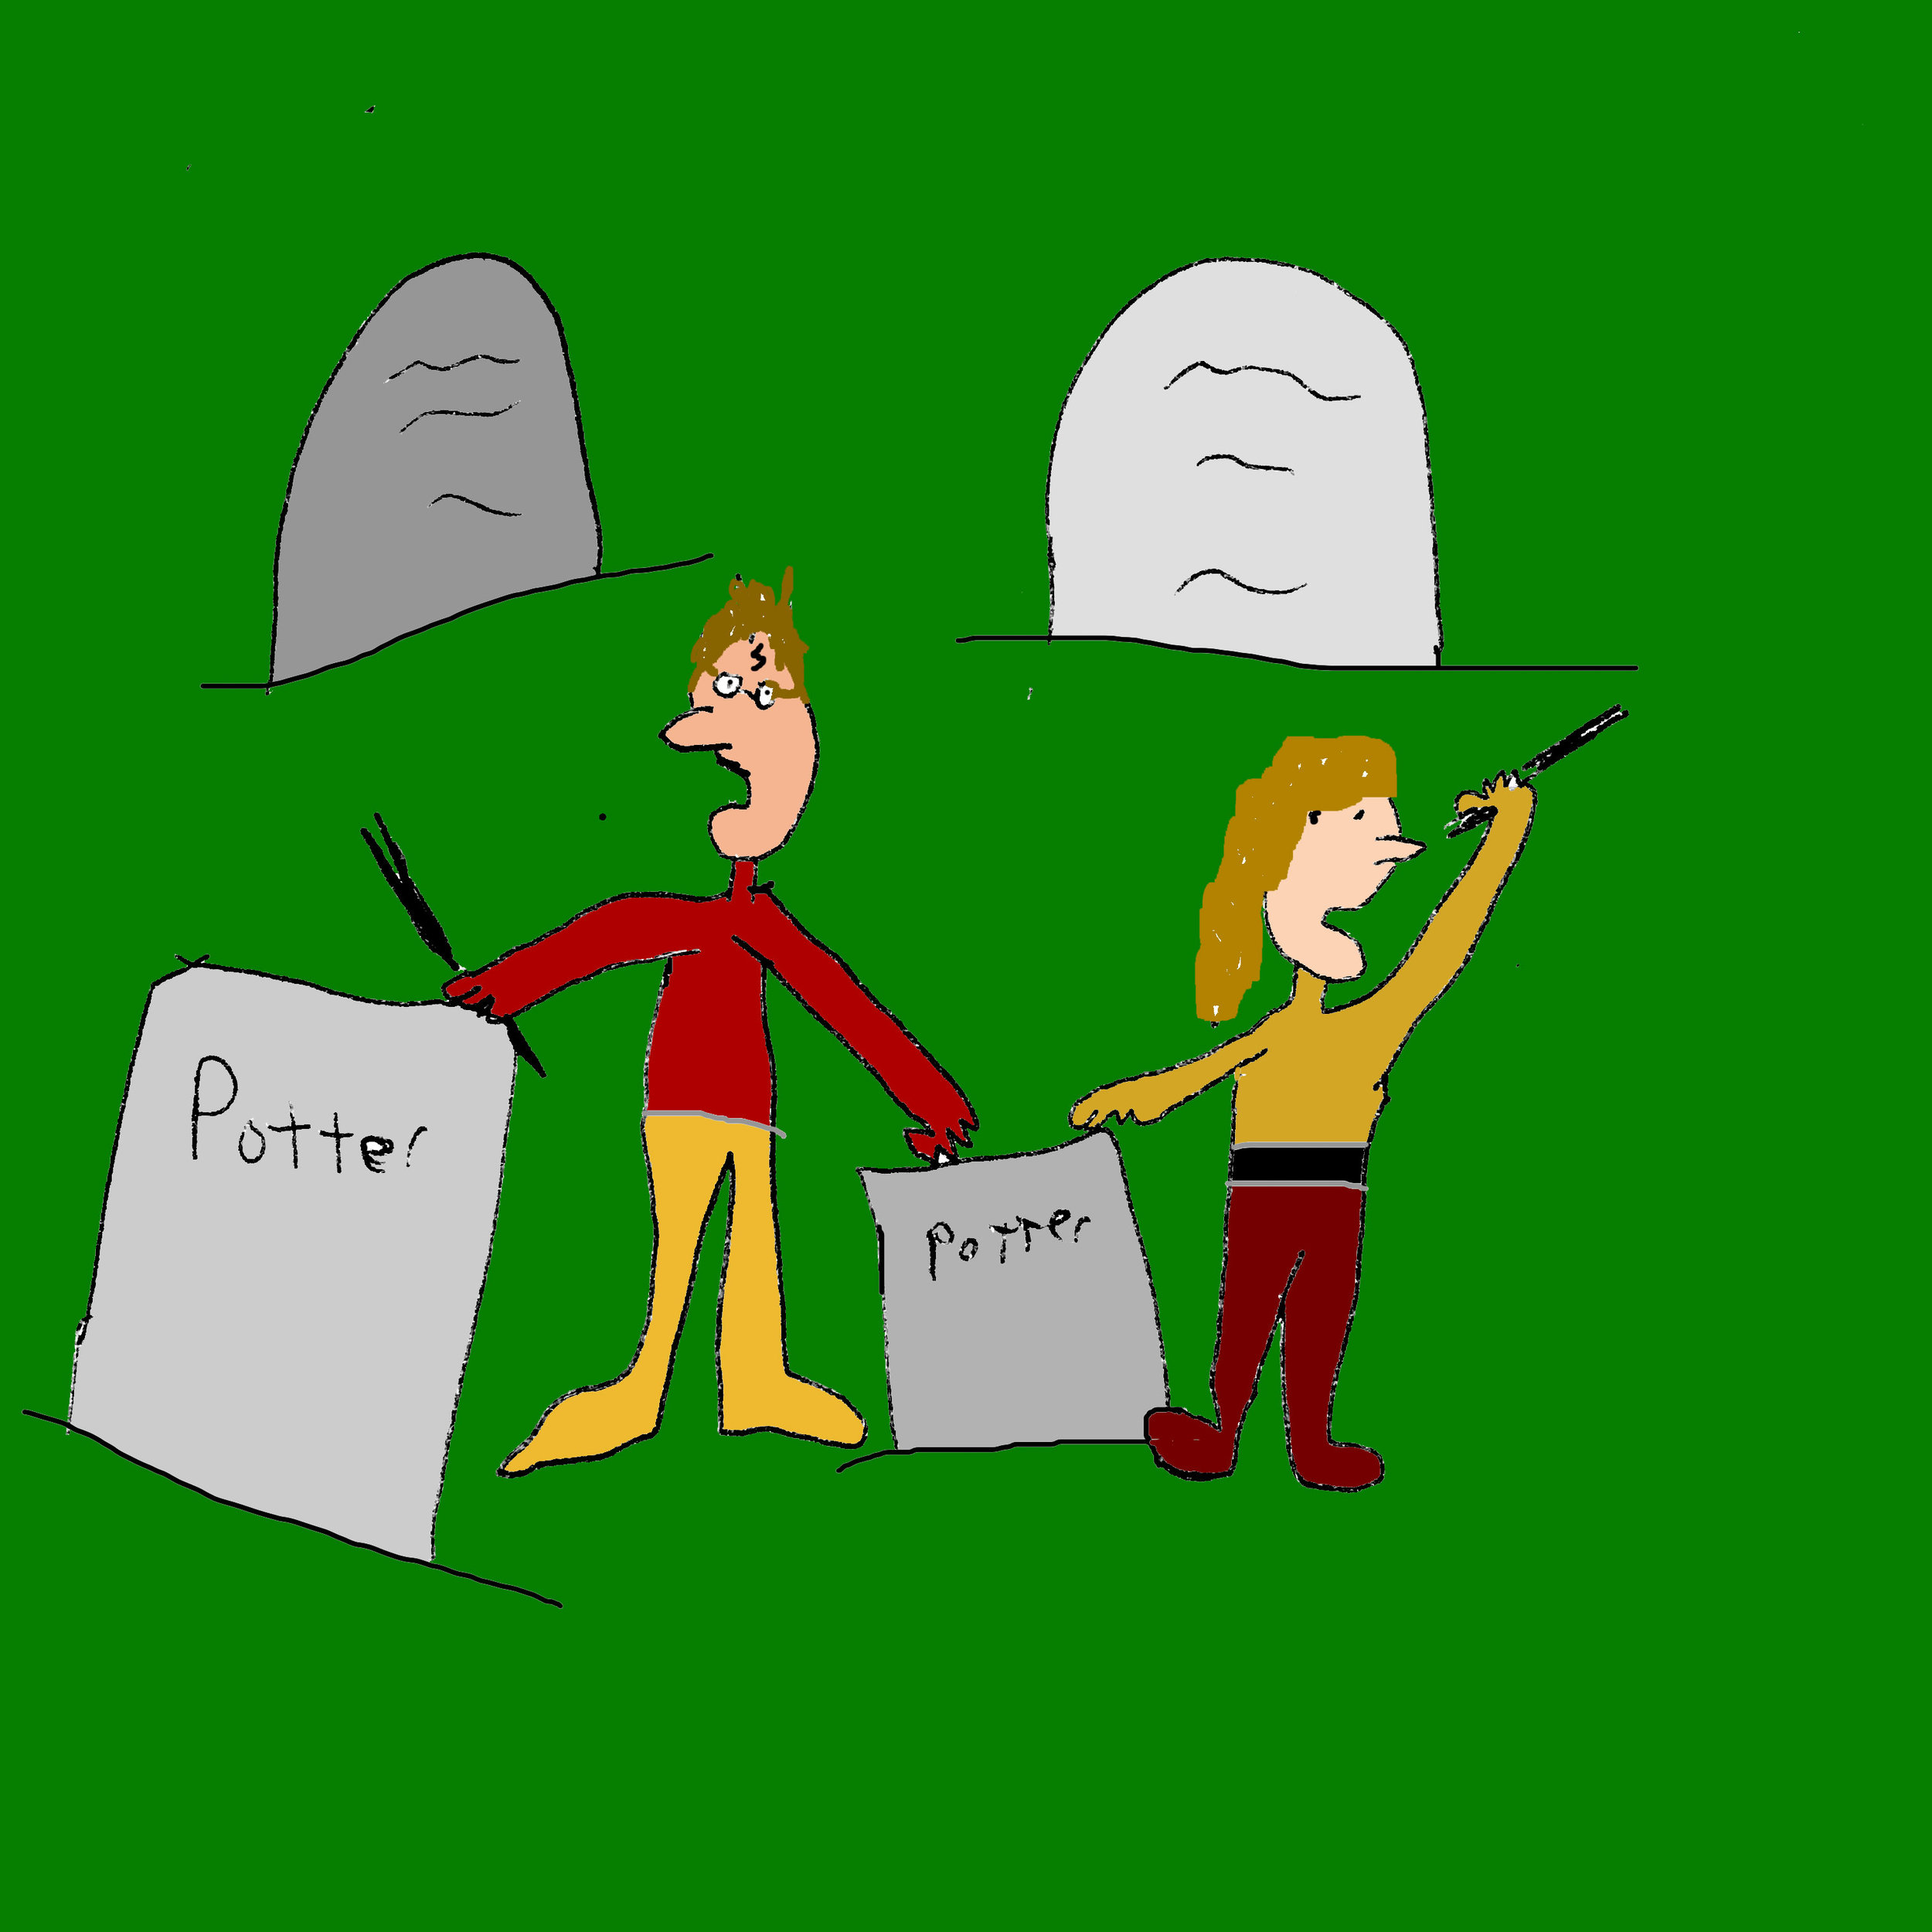 Harry and Hermione looking through the cemetery